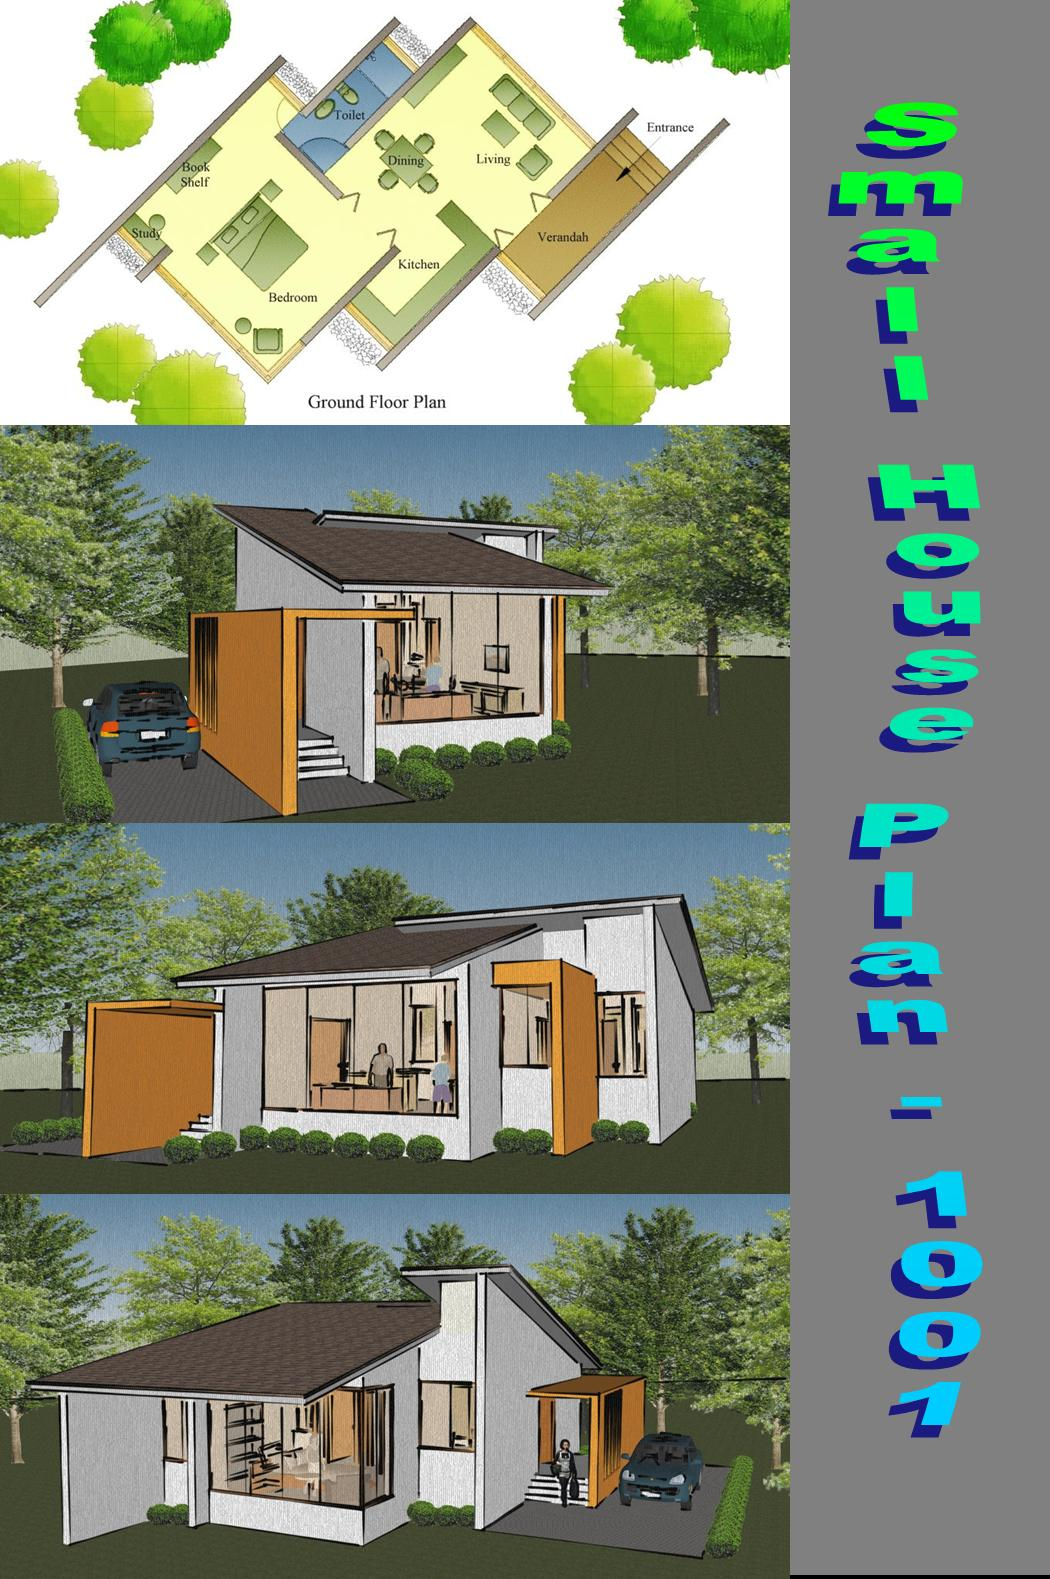 Home plans in india 5 best small home plans from for Best house plans